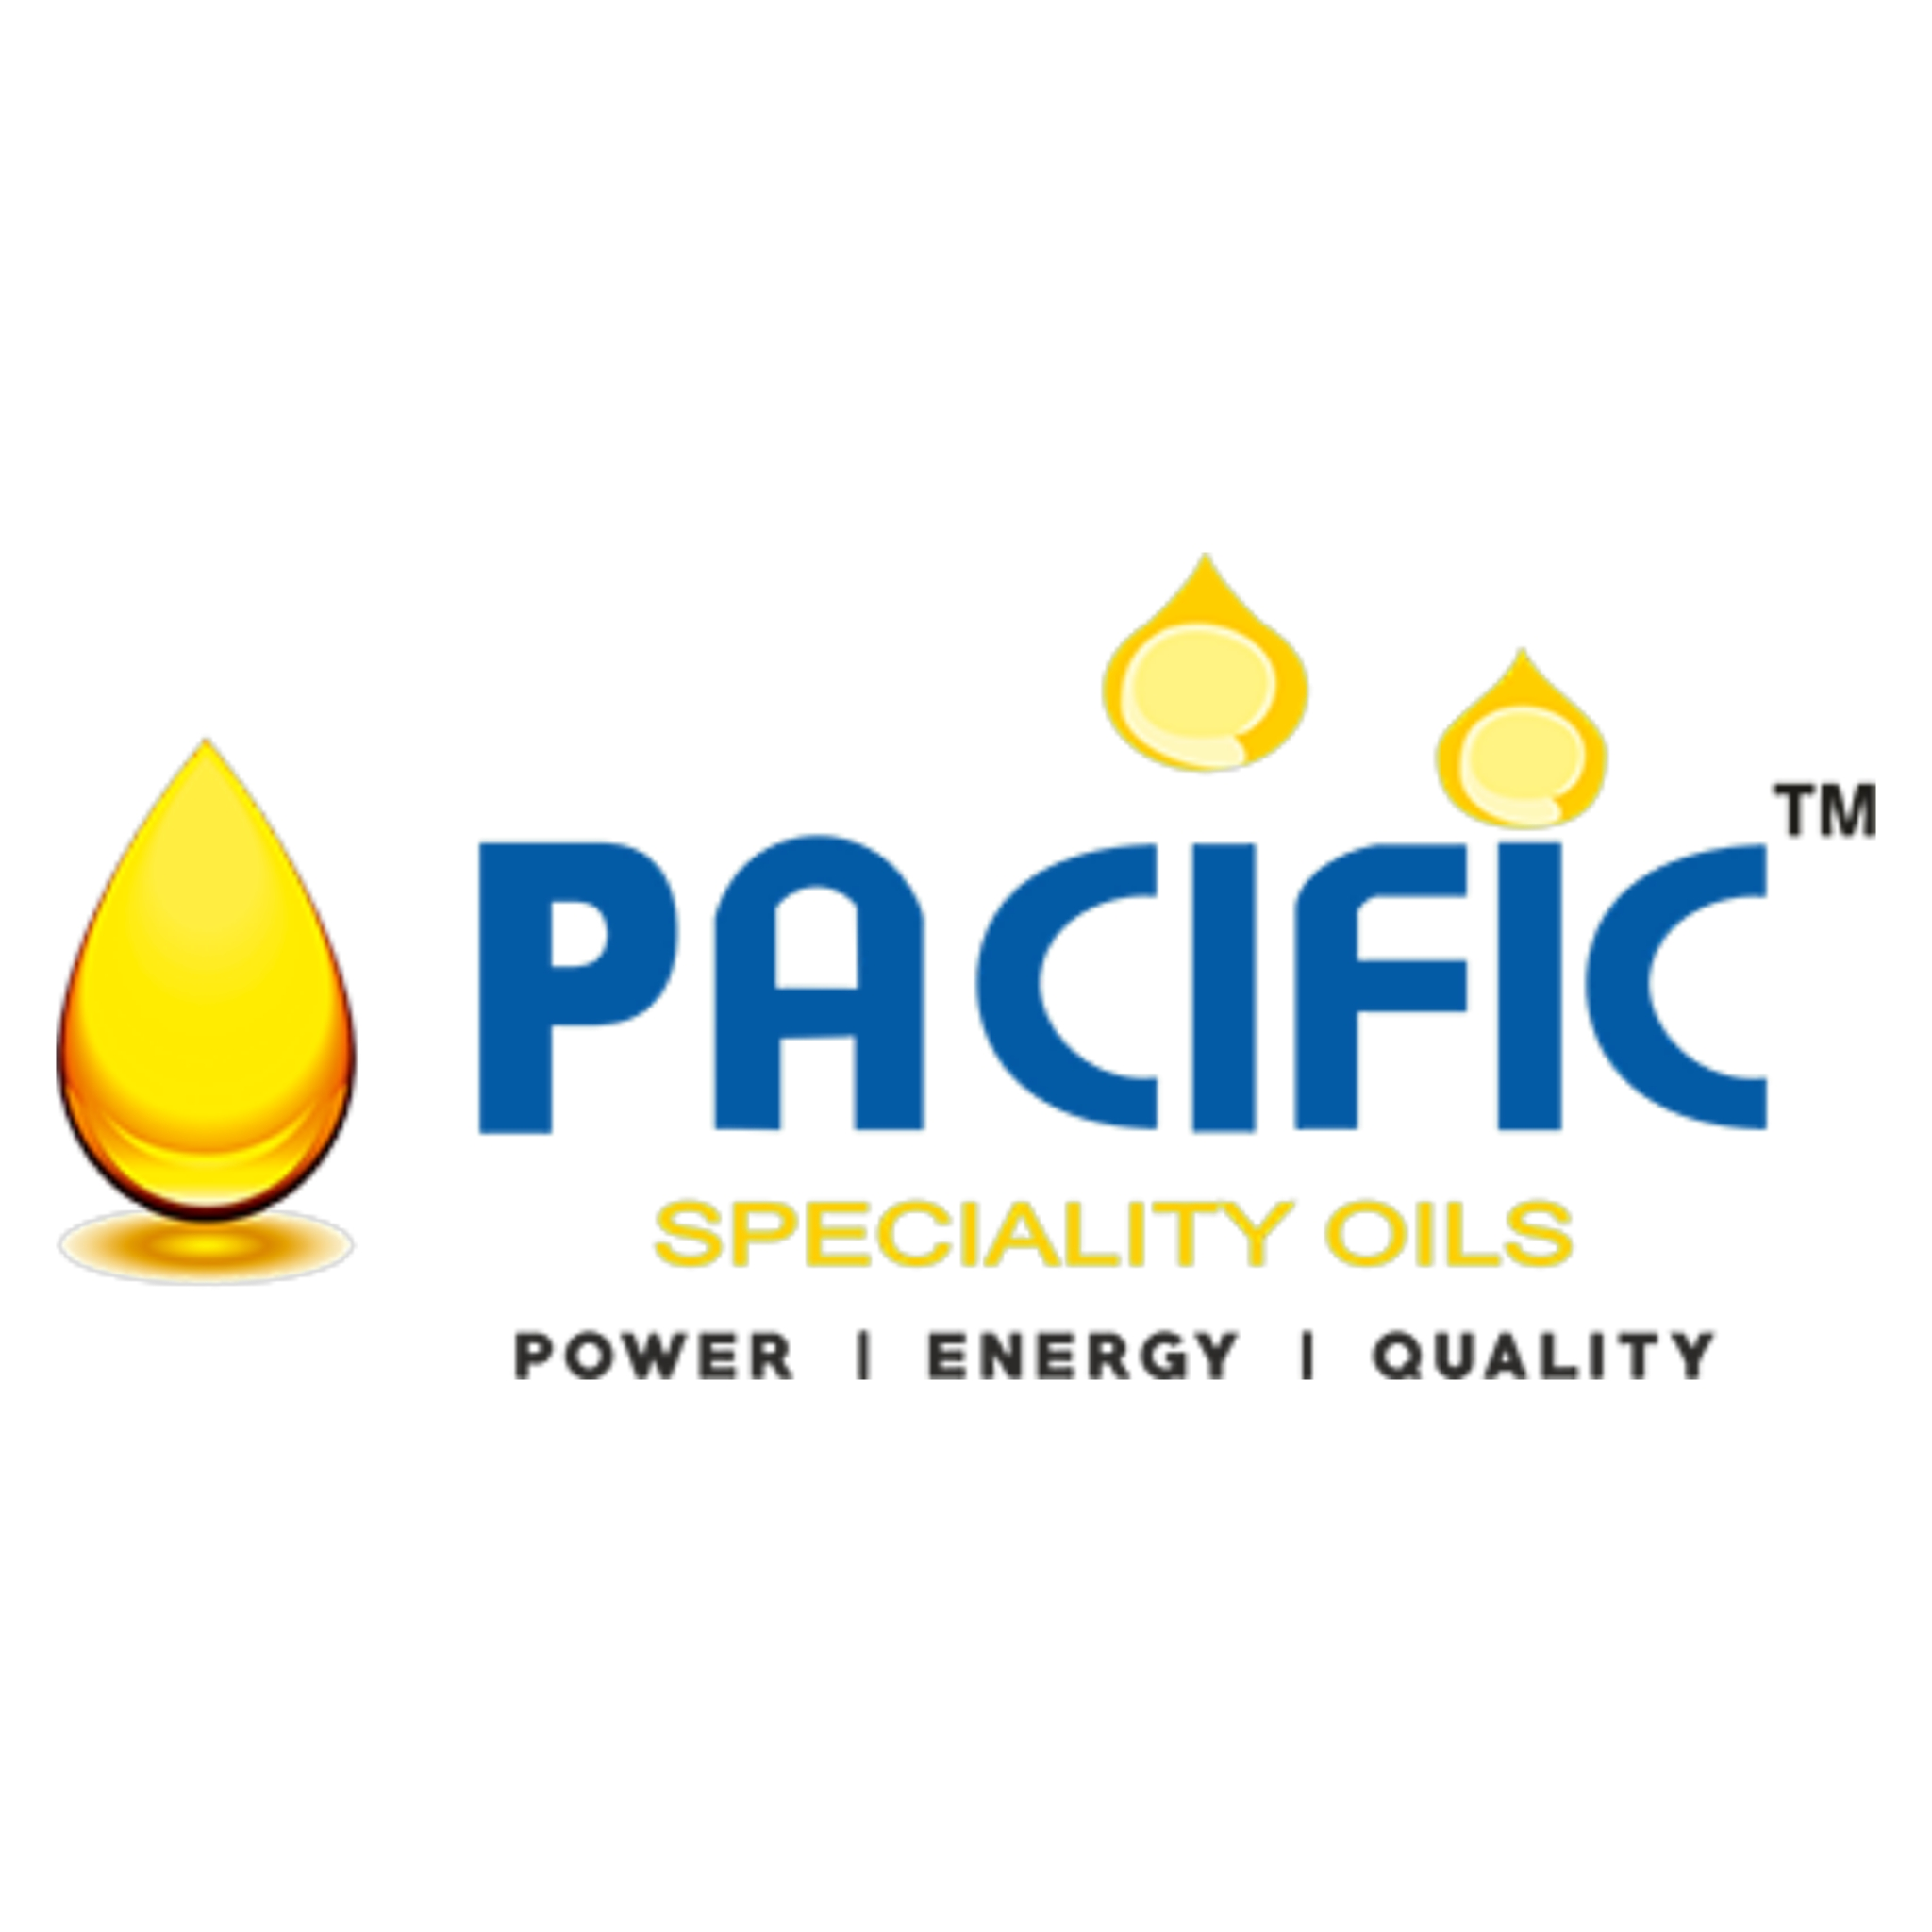 Pacific Specialty Oils